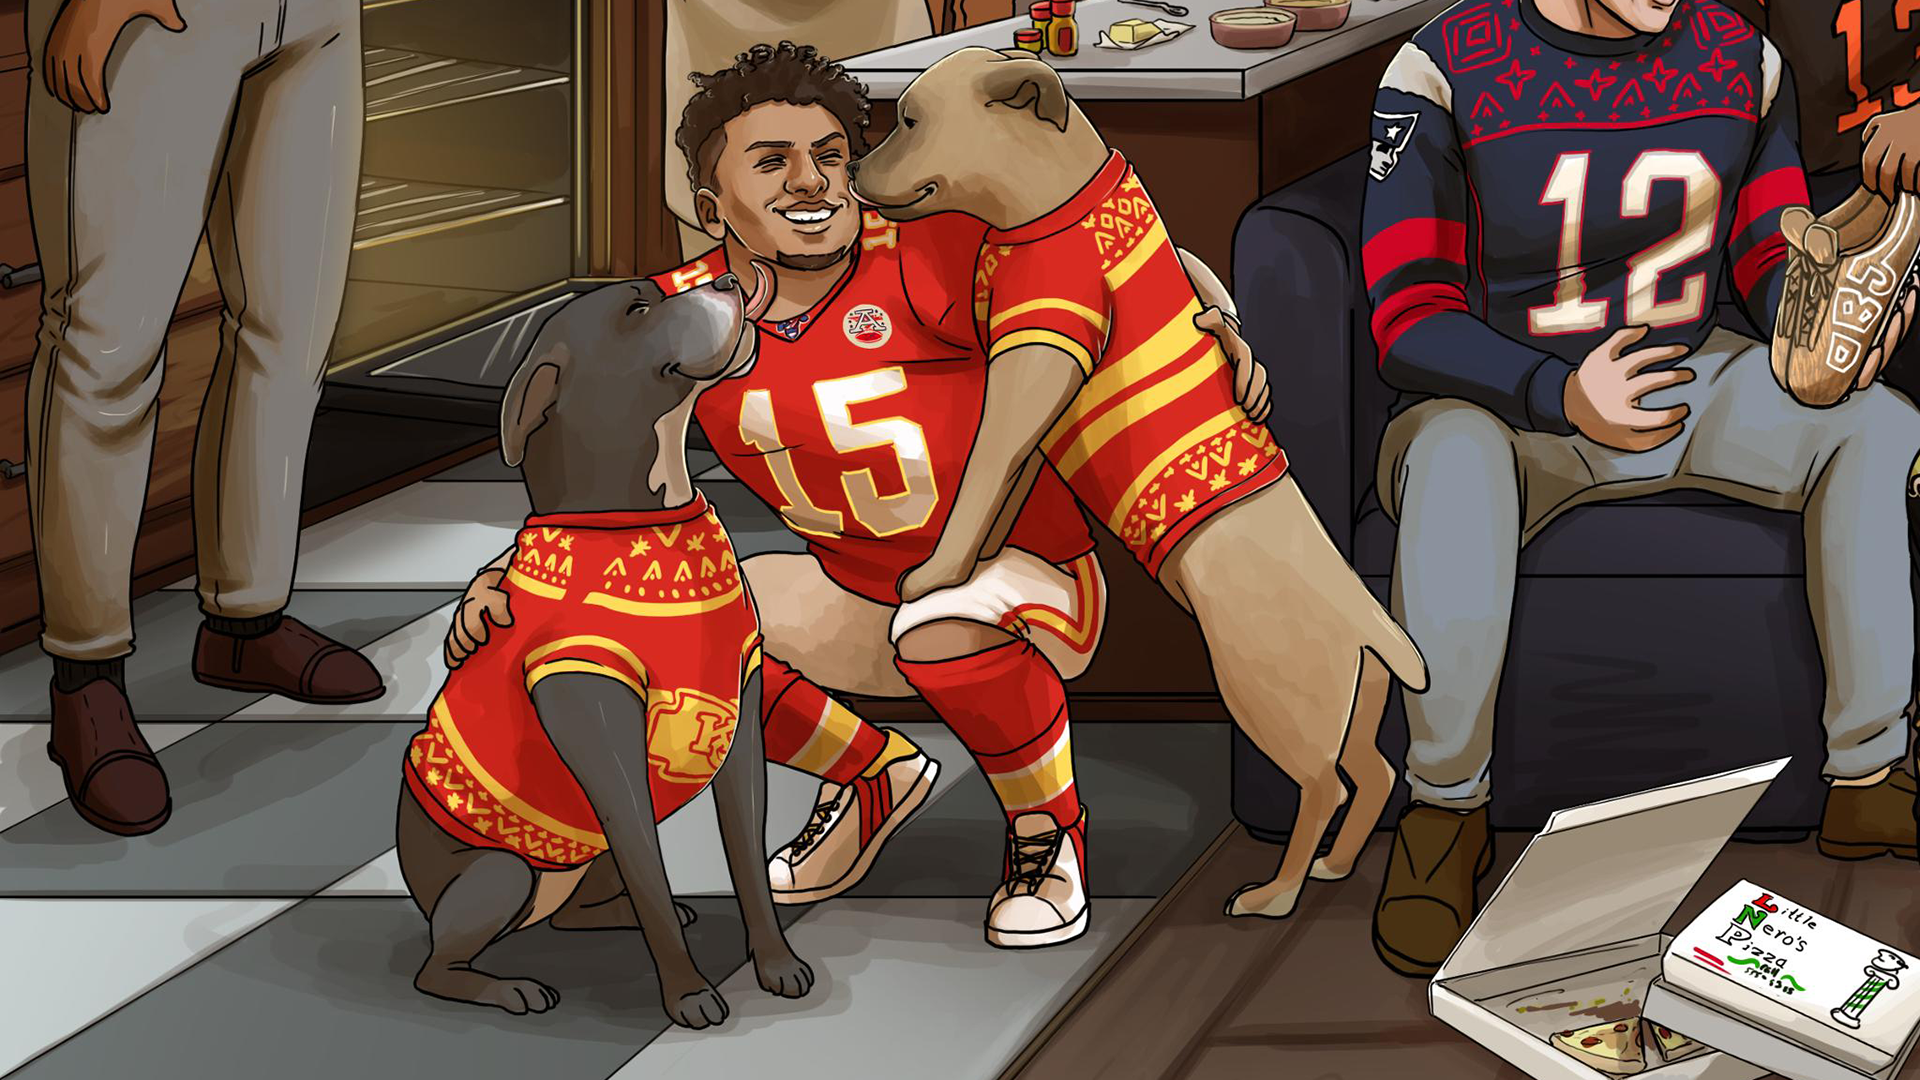 Nfl On Christmas 2020 Did this NFL Christmas graphic predict the 49ers and Chiefs would